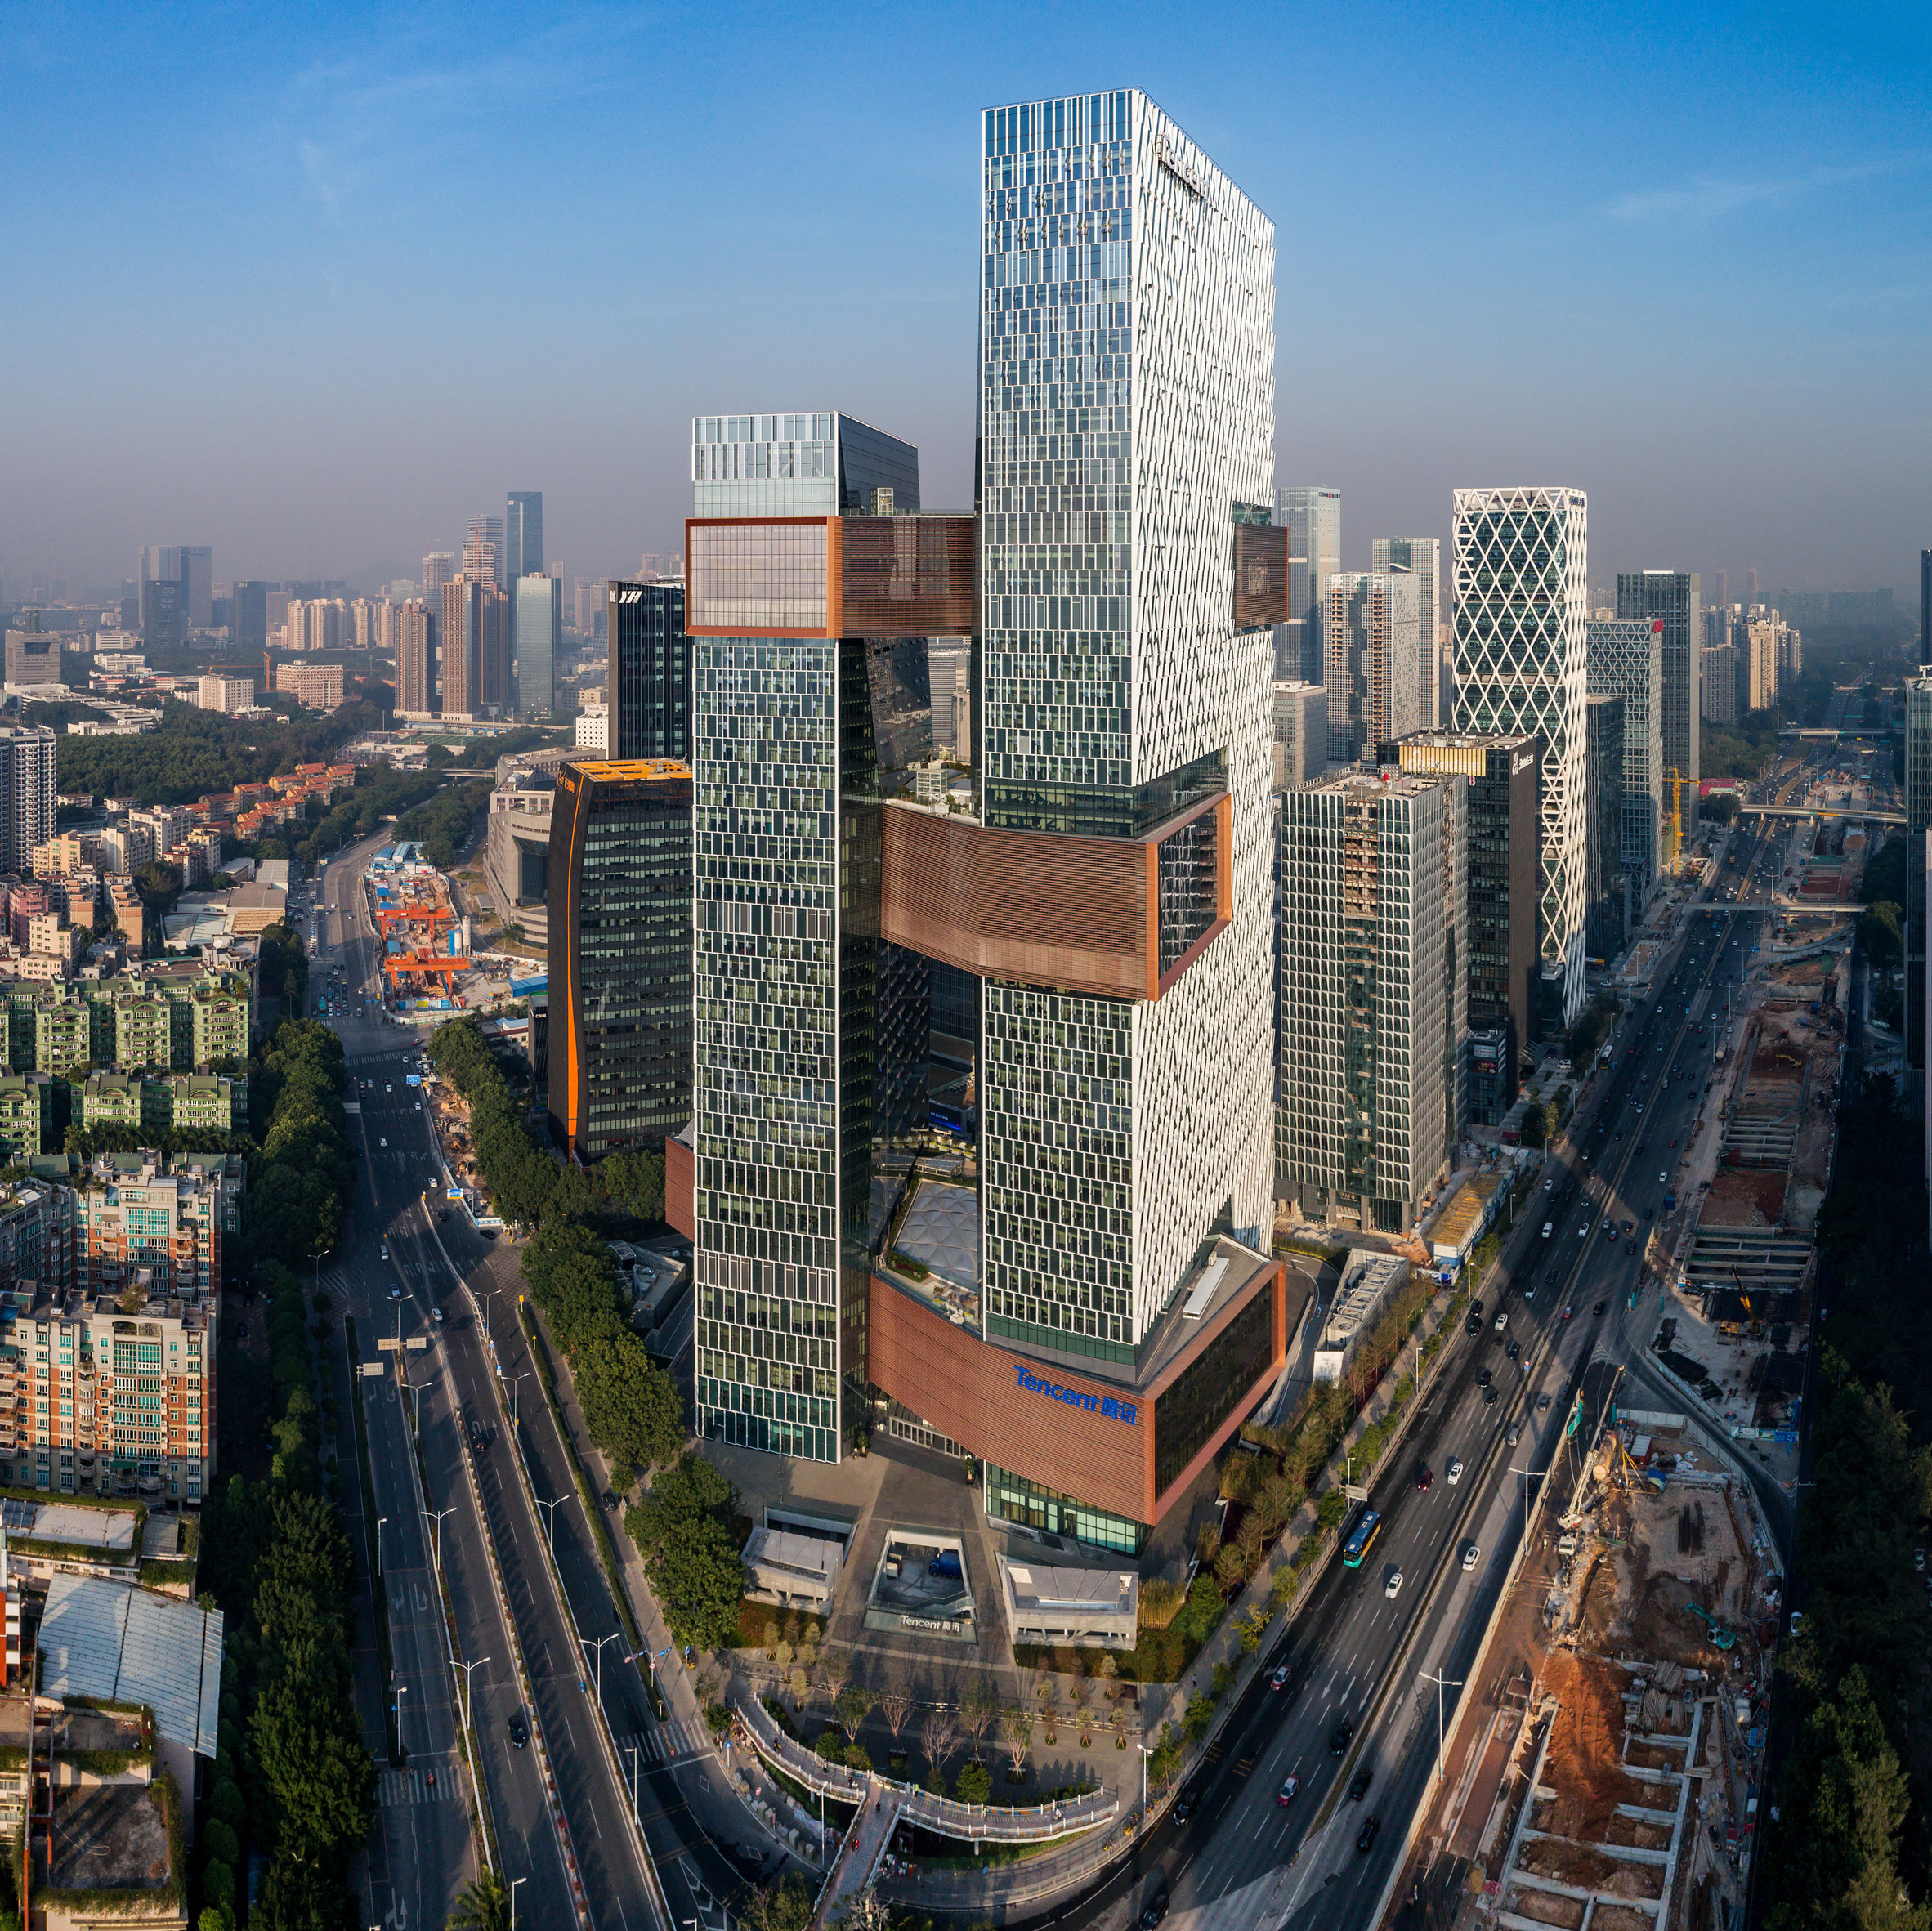 Top 10 skyscrapers: Tencent's Global Headquarters by NBBJ